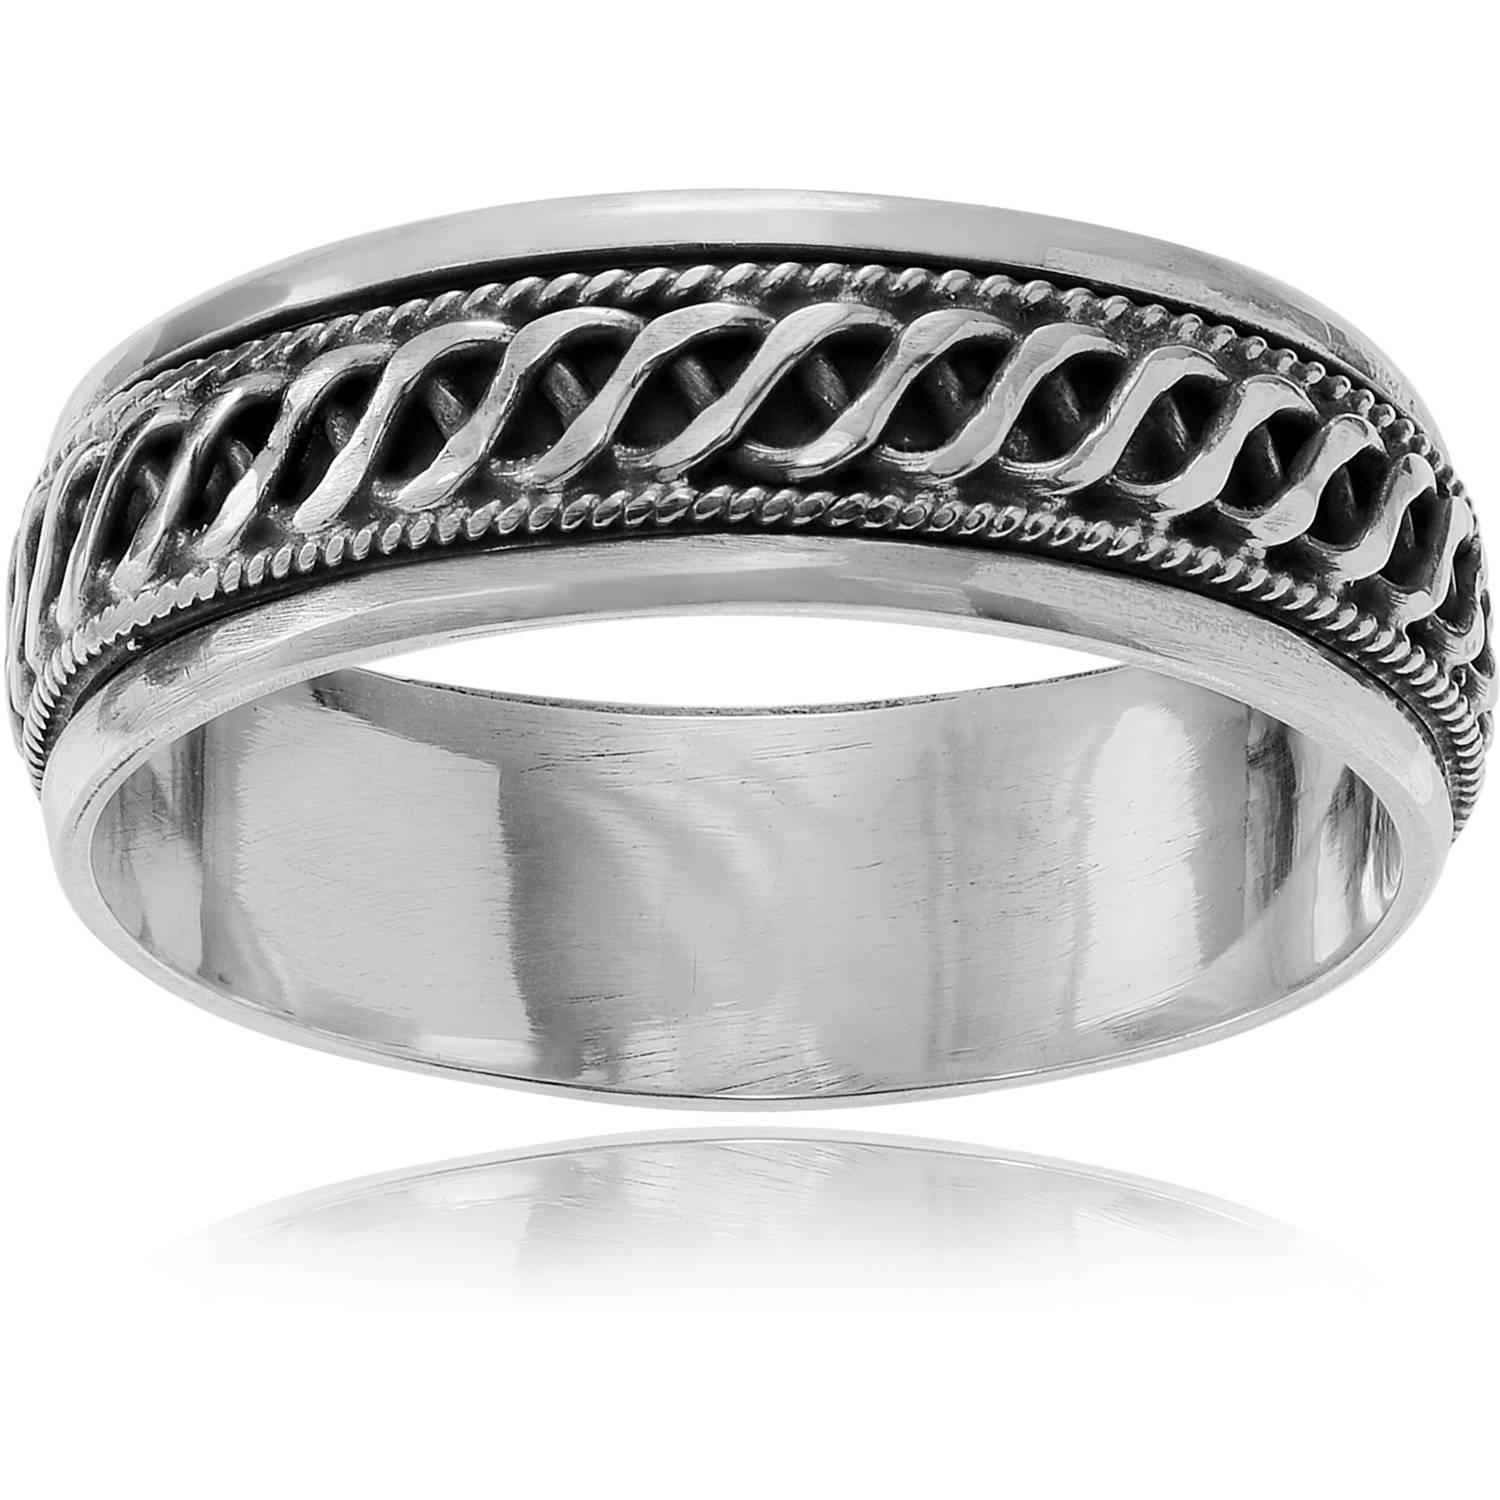 Brinley Co. Women's Sterling Silver Braid Spinner Fashion Ring